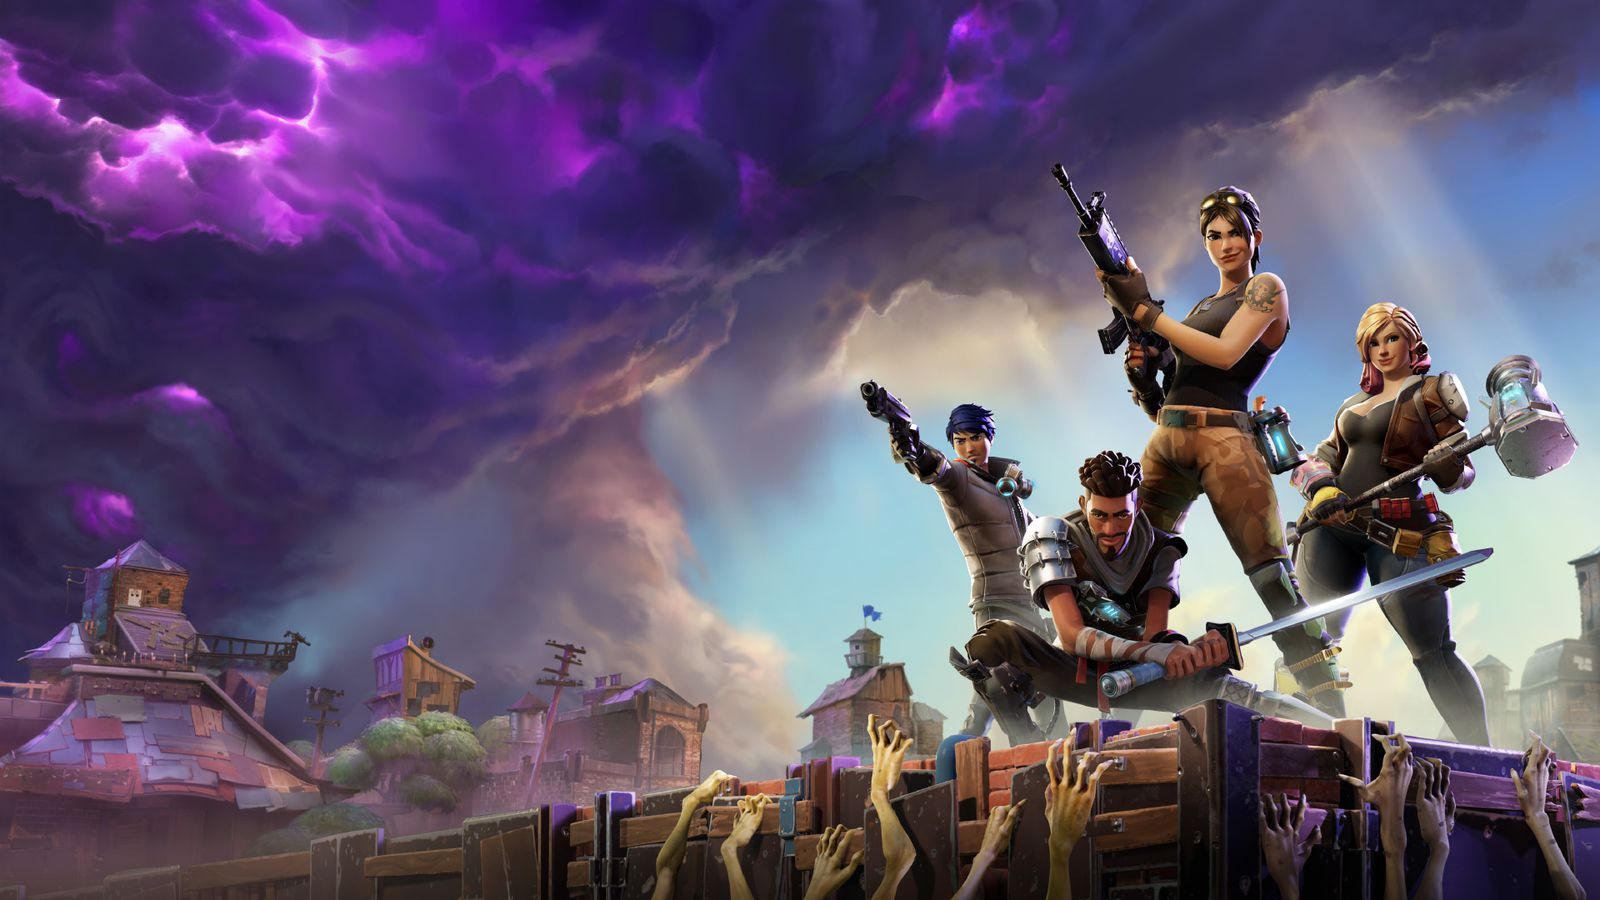 Photo of Fortnite: disponibile la modalità Party Royale e una nuova mappa